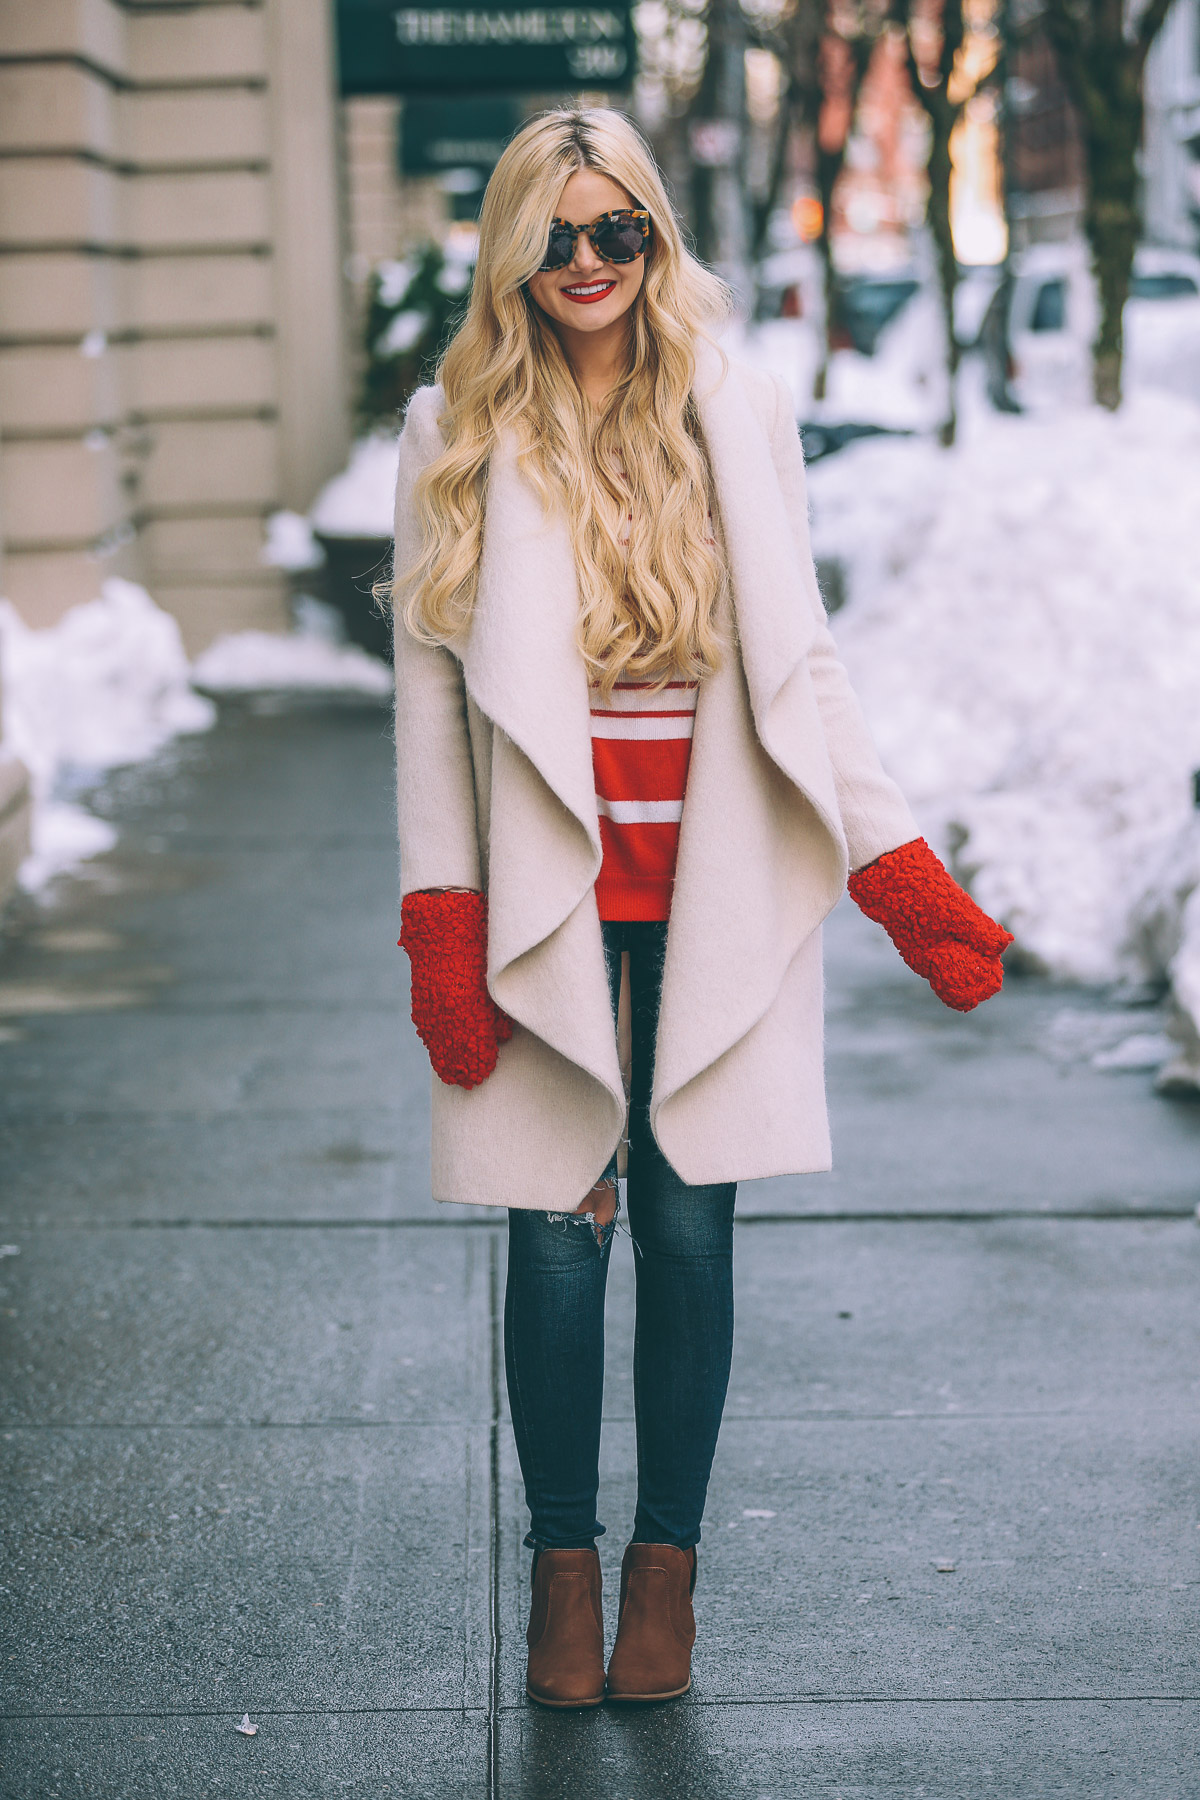 Amber Fillerup Clark is rocking these adorable scarlet mittens; pairing them with a cream overcoat and a coordinated cream and red sweater for the ultimate winter look! Boots: DSW, Jacket: Veeda, Coat: Vince, Scarf: Asos.